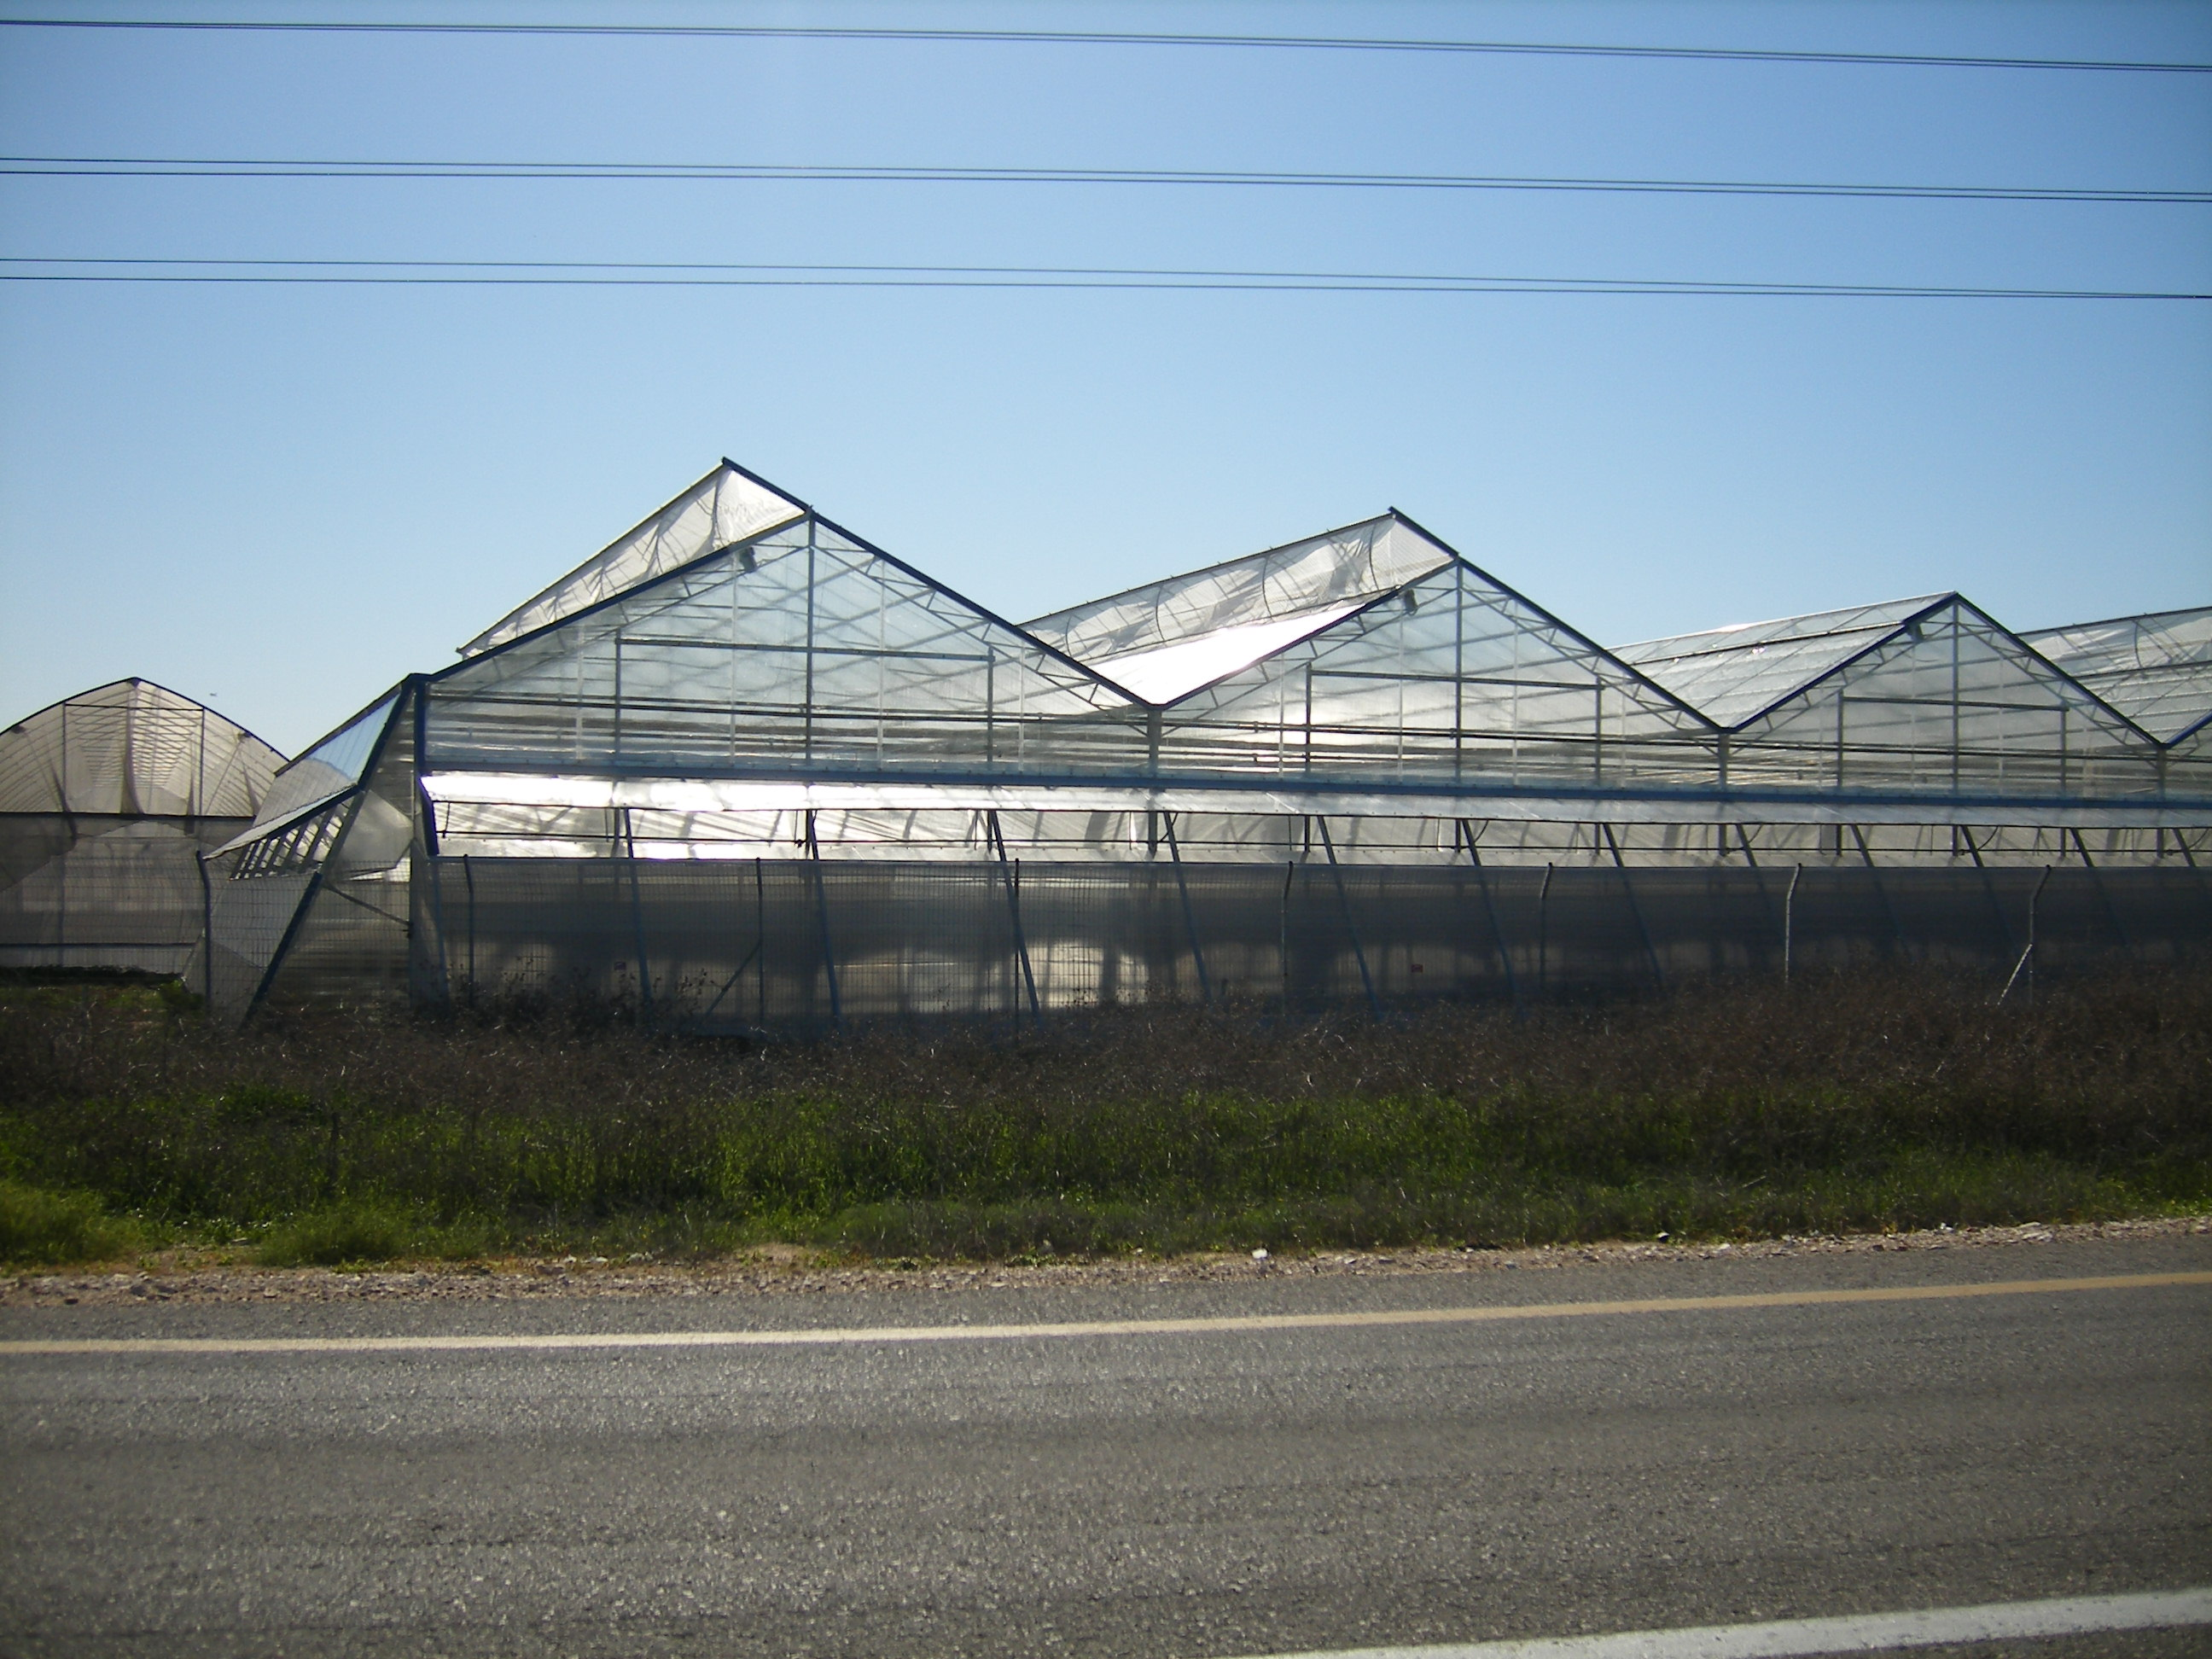 Smartfarming greenhouse with polycarbonate covering (5)